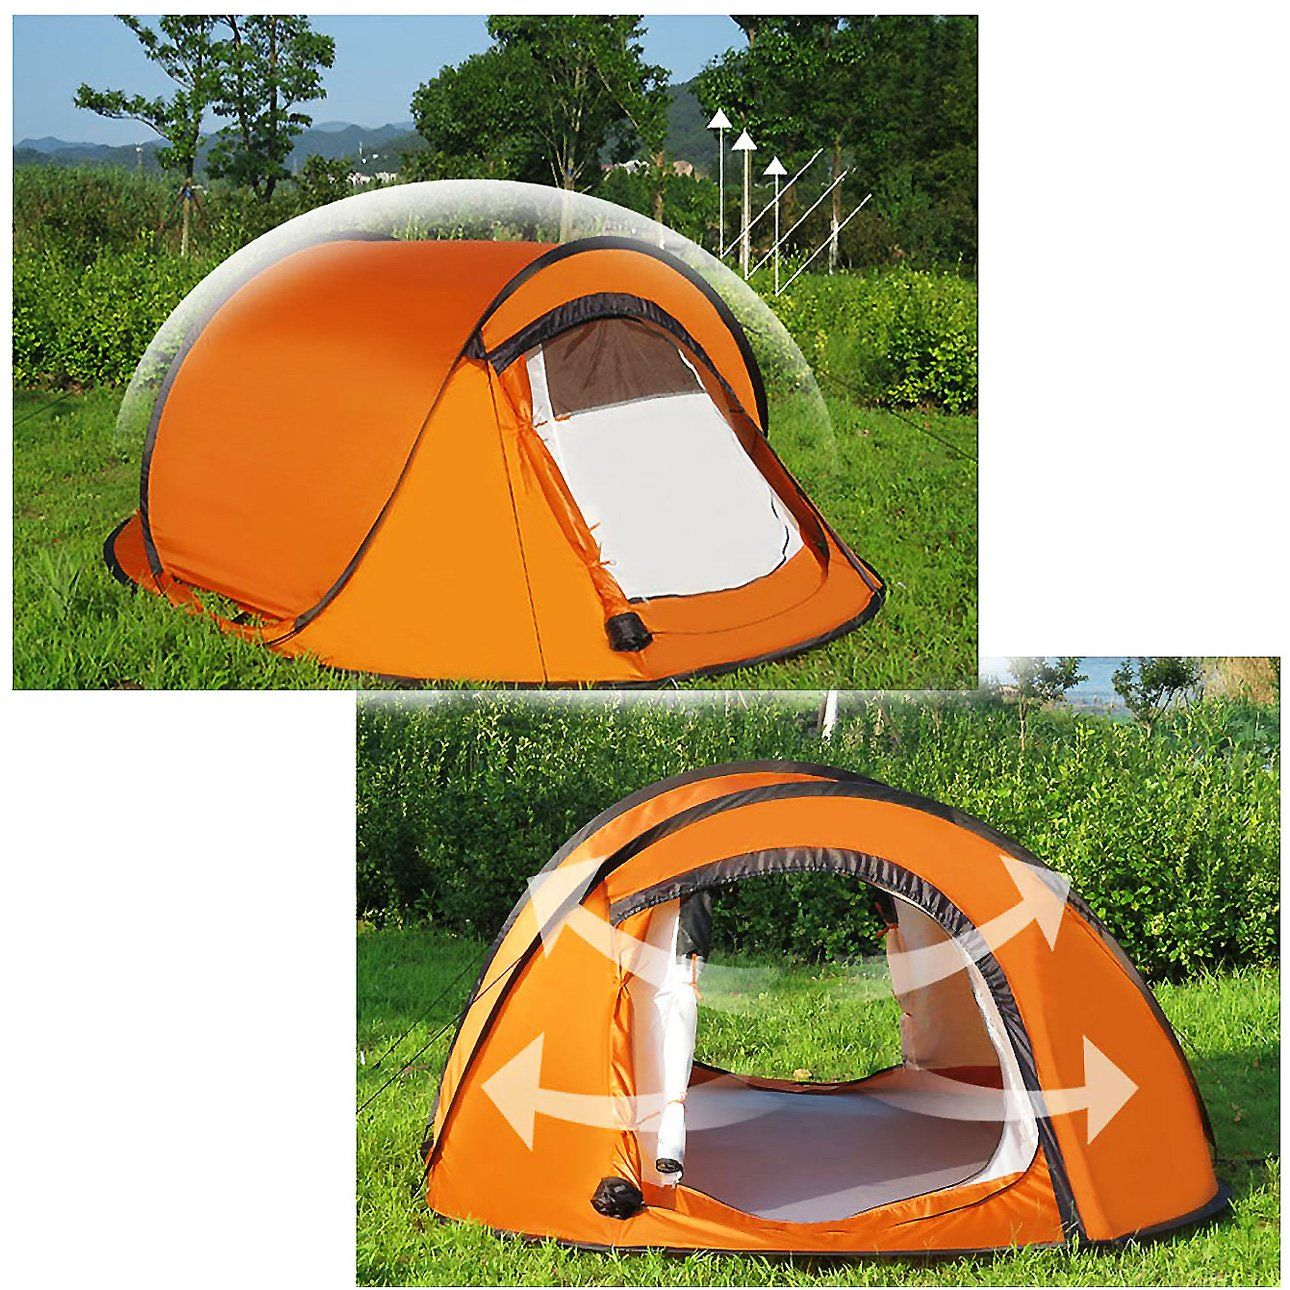 Sandm Automatically Camping Tent 2 Seconds To Open The Tent Fully Automatic 3 Person Tent Outdoor Camping Gear With Outdoor Camping Gear Backpacking Tent Tent